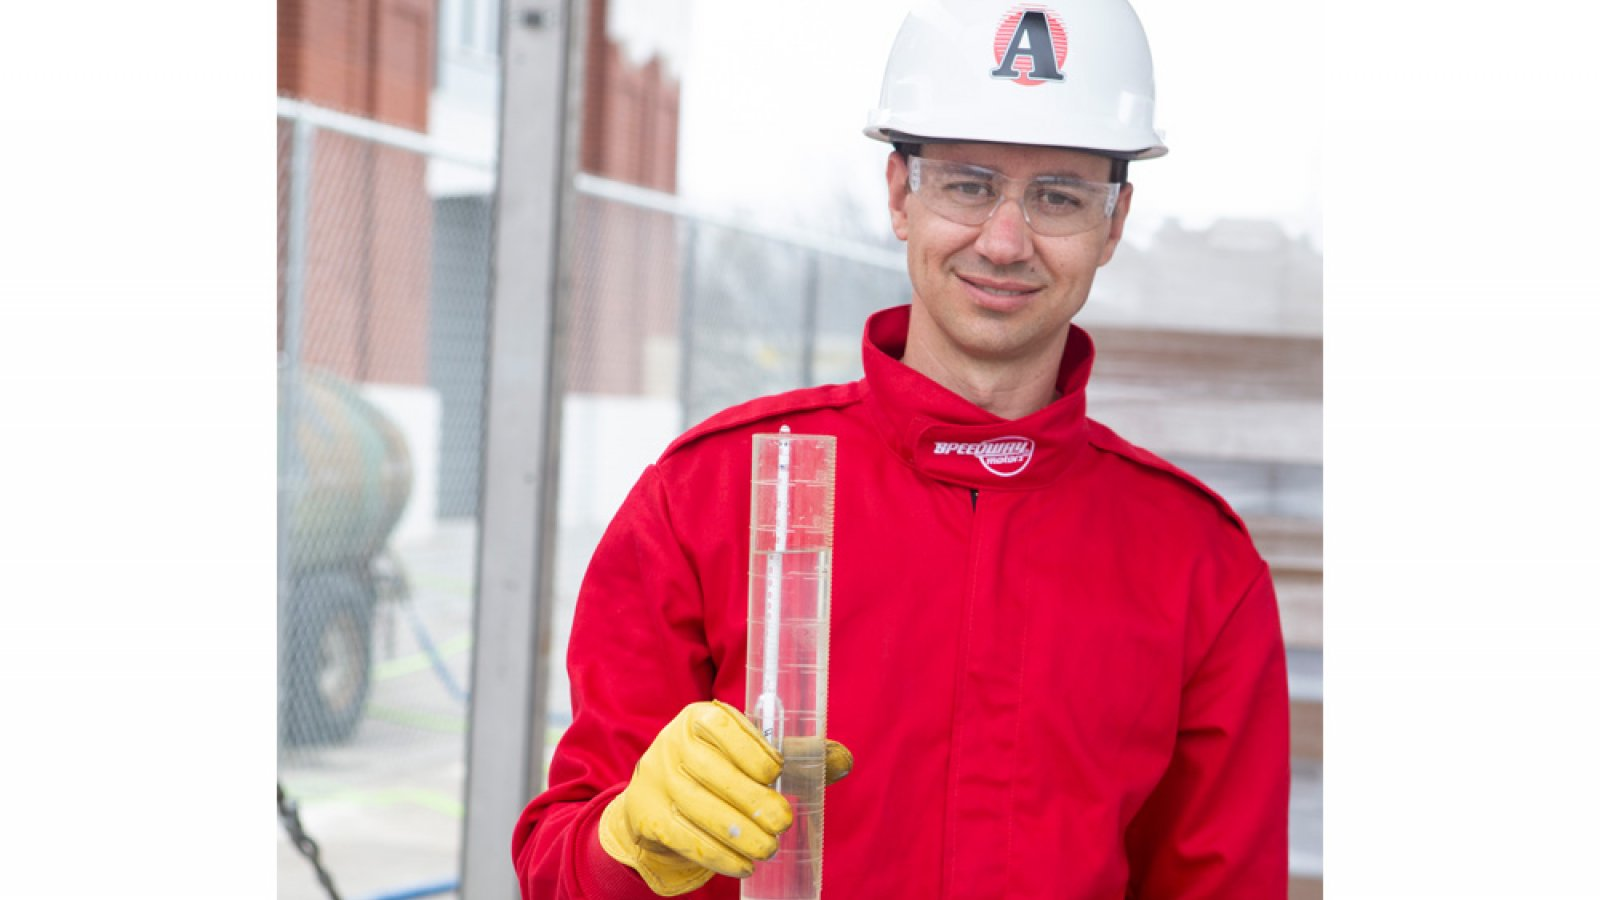 Hunter Flodman, assistant professor of practice in chemical and biomolecular engineering, is a leader in a partnership between the University, the State of Nebraska and the ethanol industry, to manufacture hand sanitizer for healthcare workers during the COVID-19 crisis. (Nebraska Ethanol Board photo)